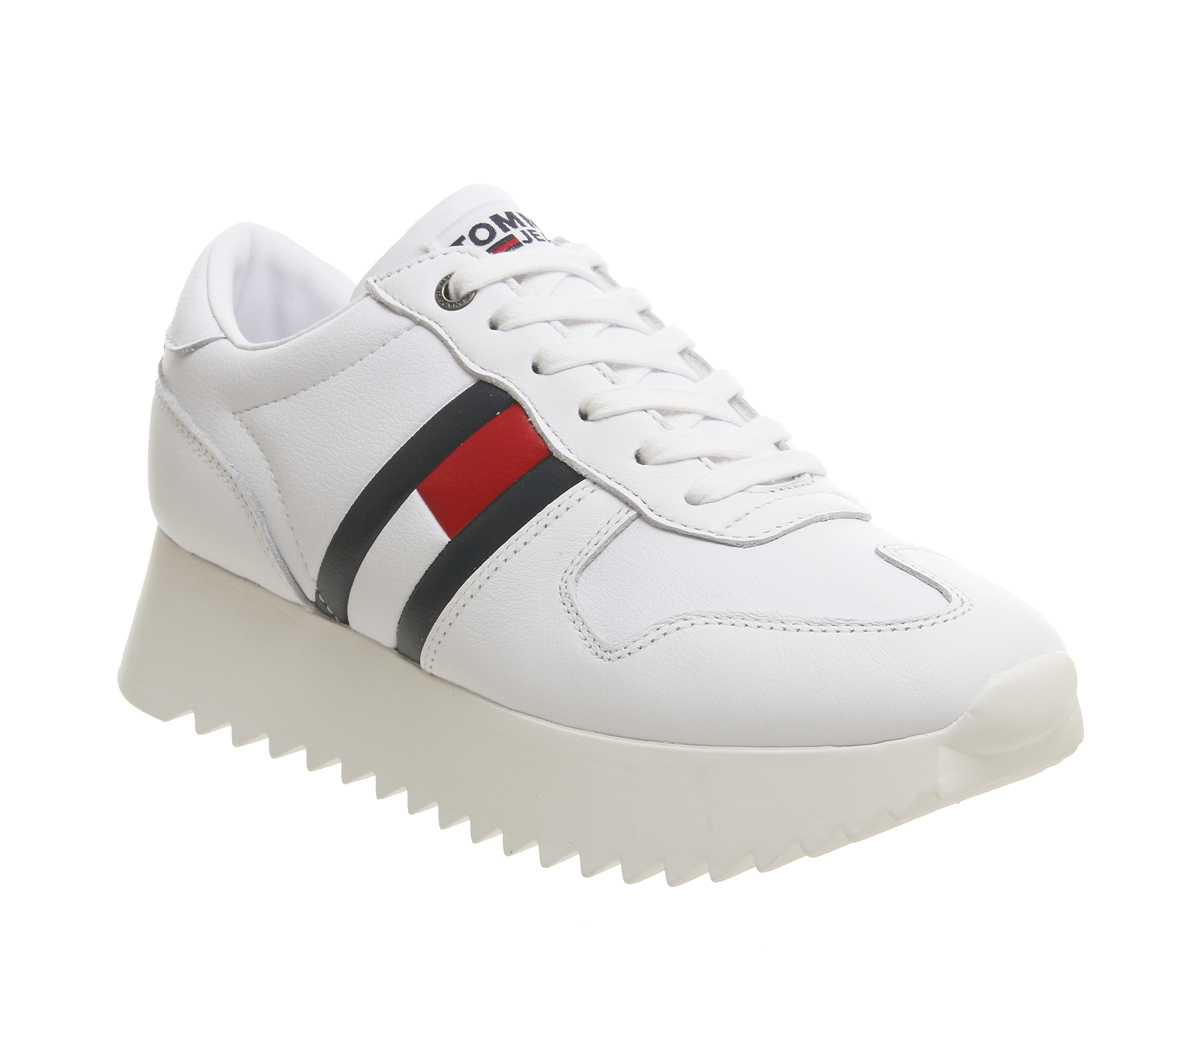 40d9a71b52c Sentinel Womens Tommy Hilfiger High Cleated Sneakers White Red Blue  Trainers Shoes